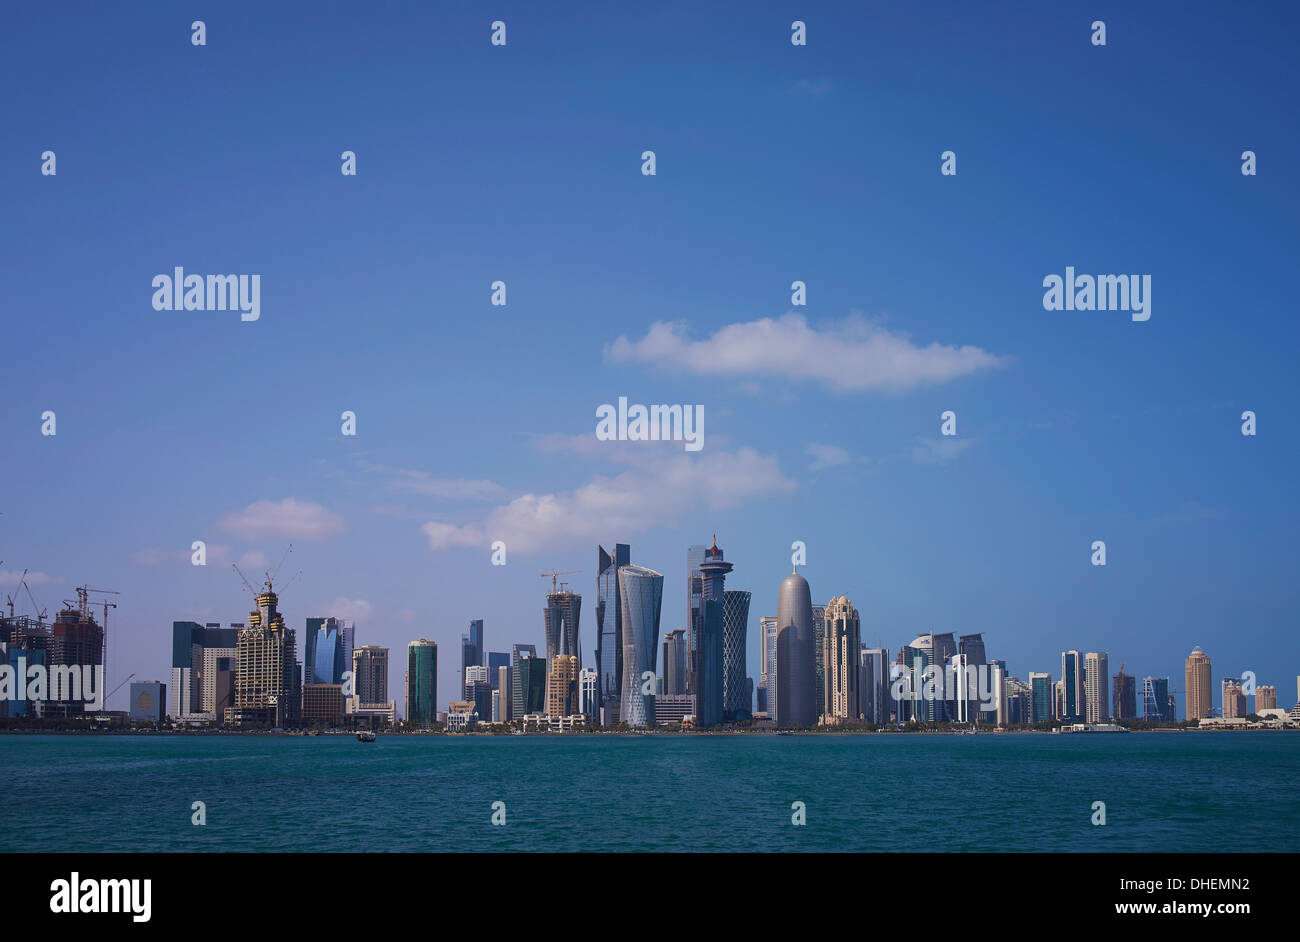 Futuristic skyscrapers downtown in Doha, Qatar, Middle East - Stock Image